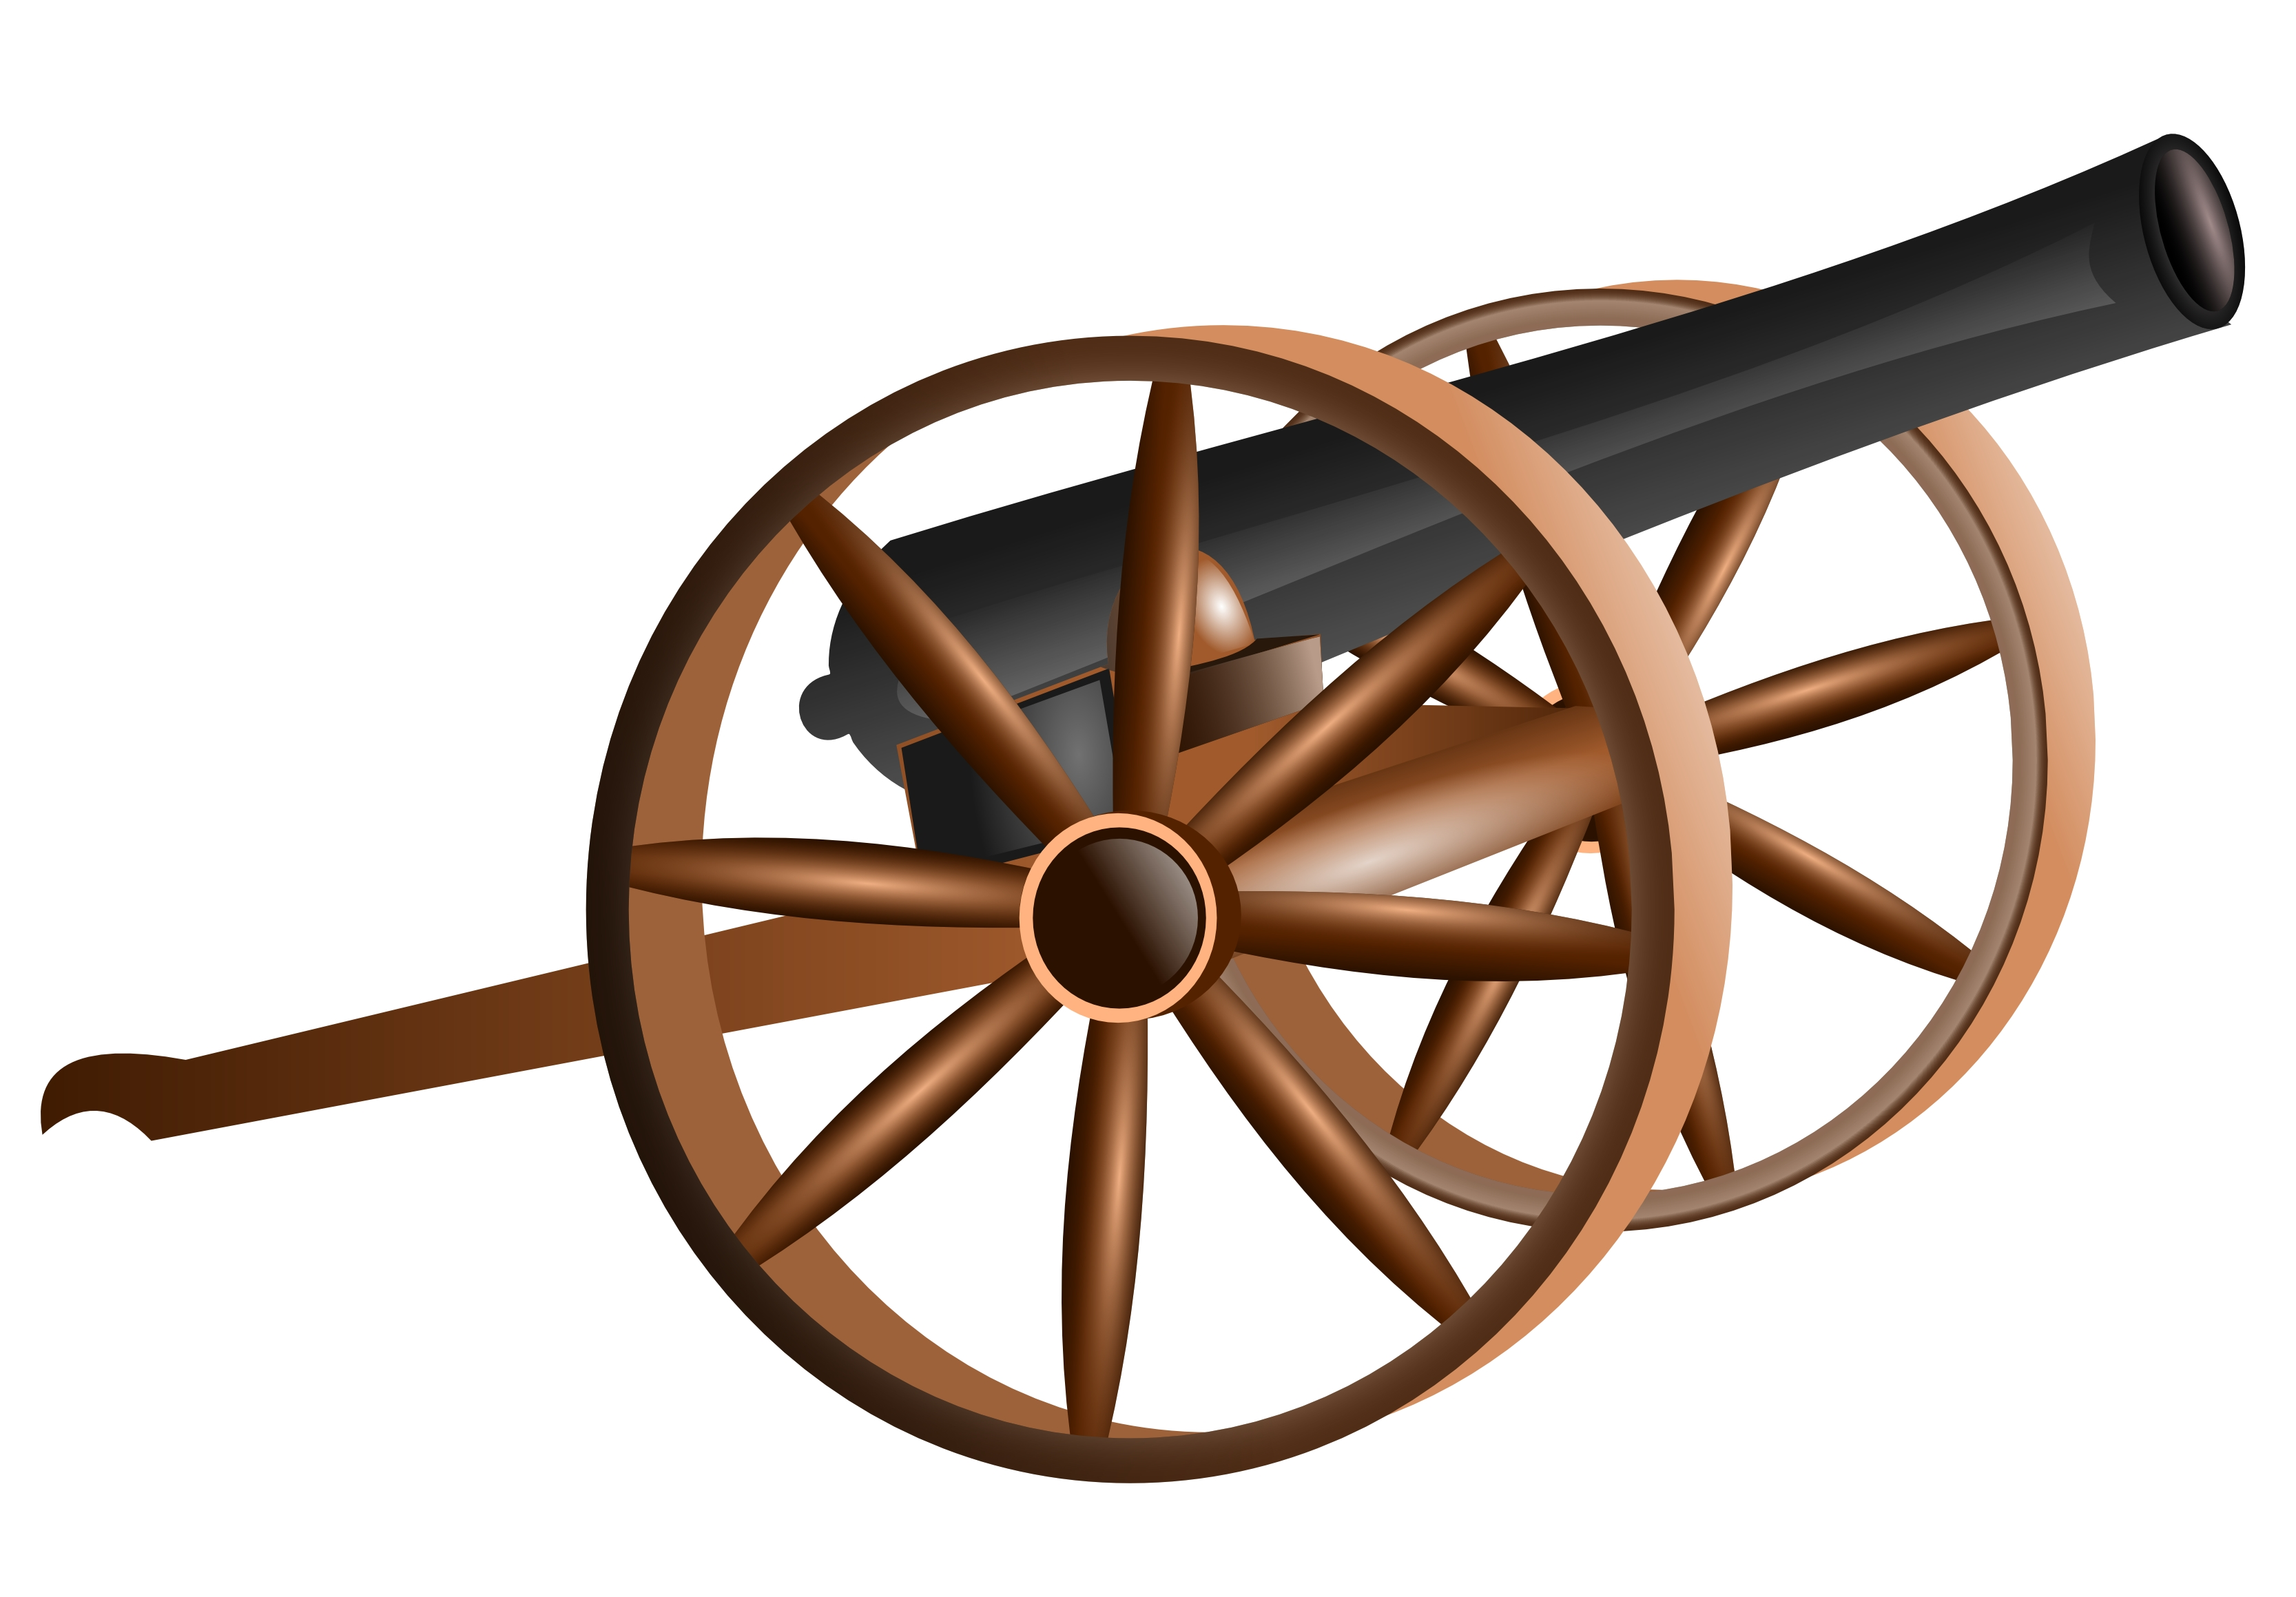 Cannon clipart old firing, Cannon old firing Transparent.